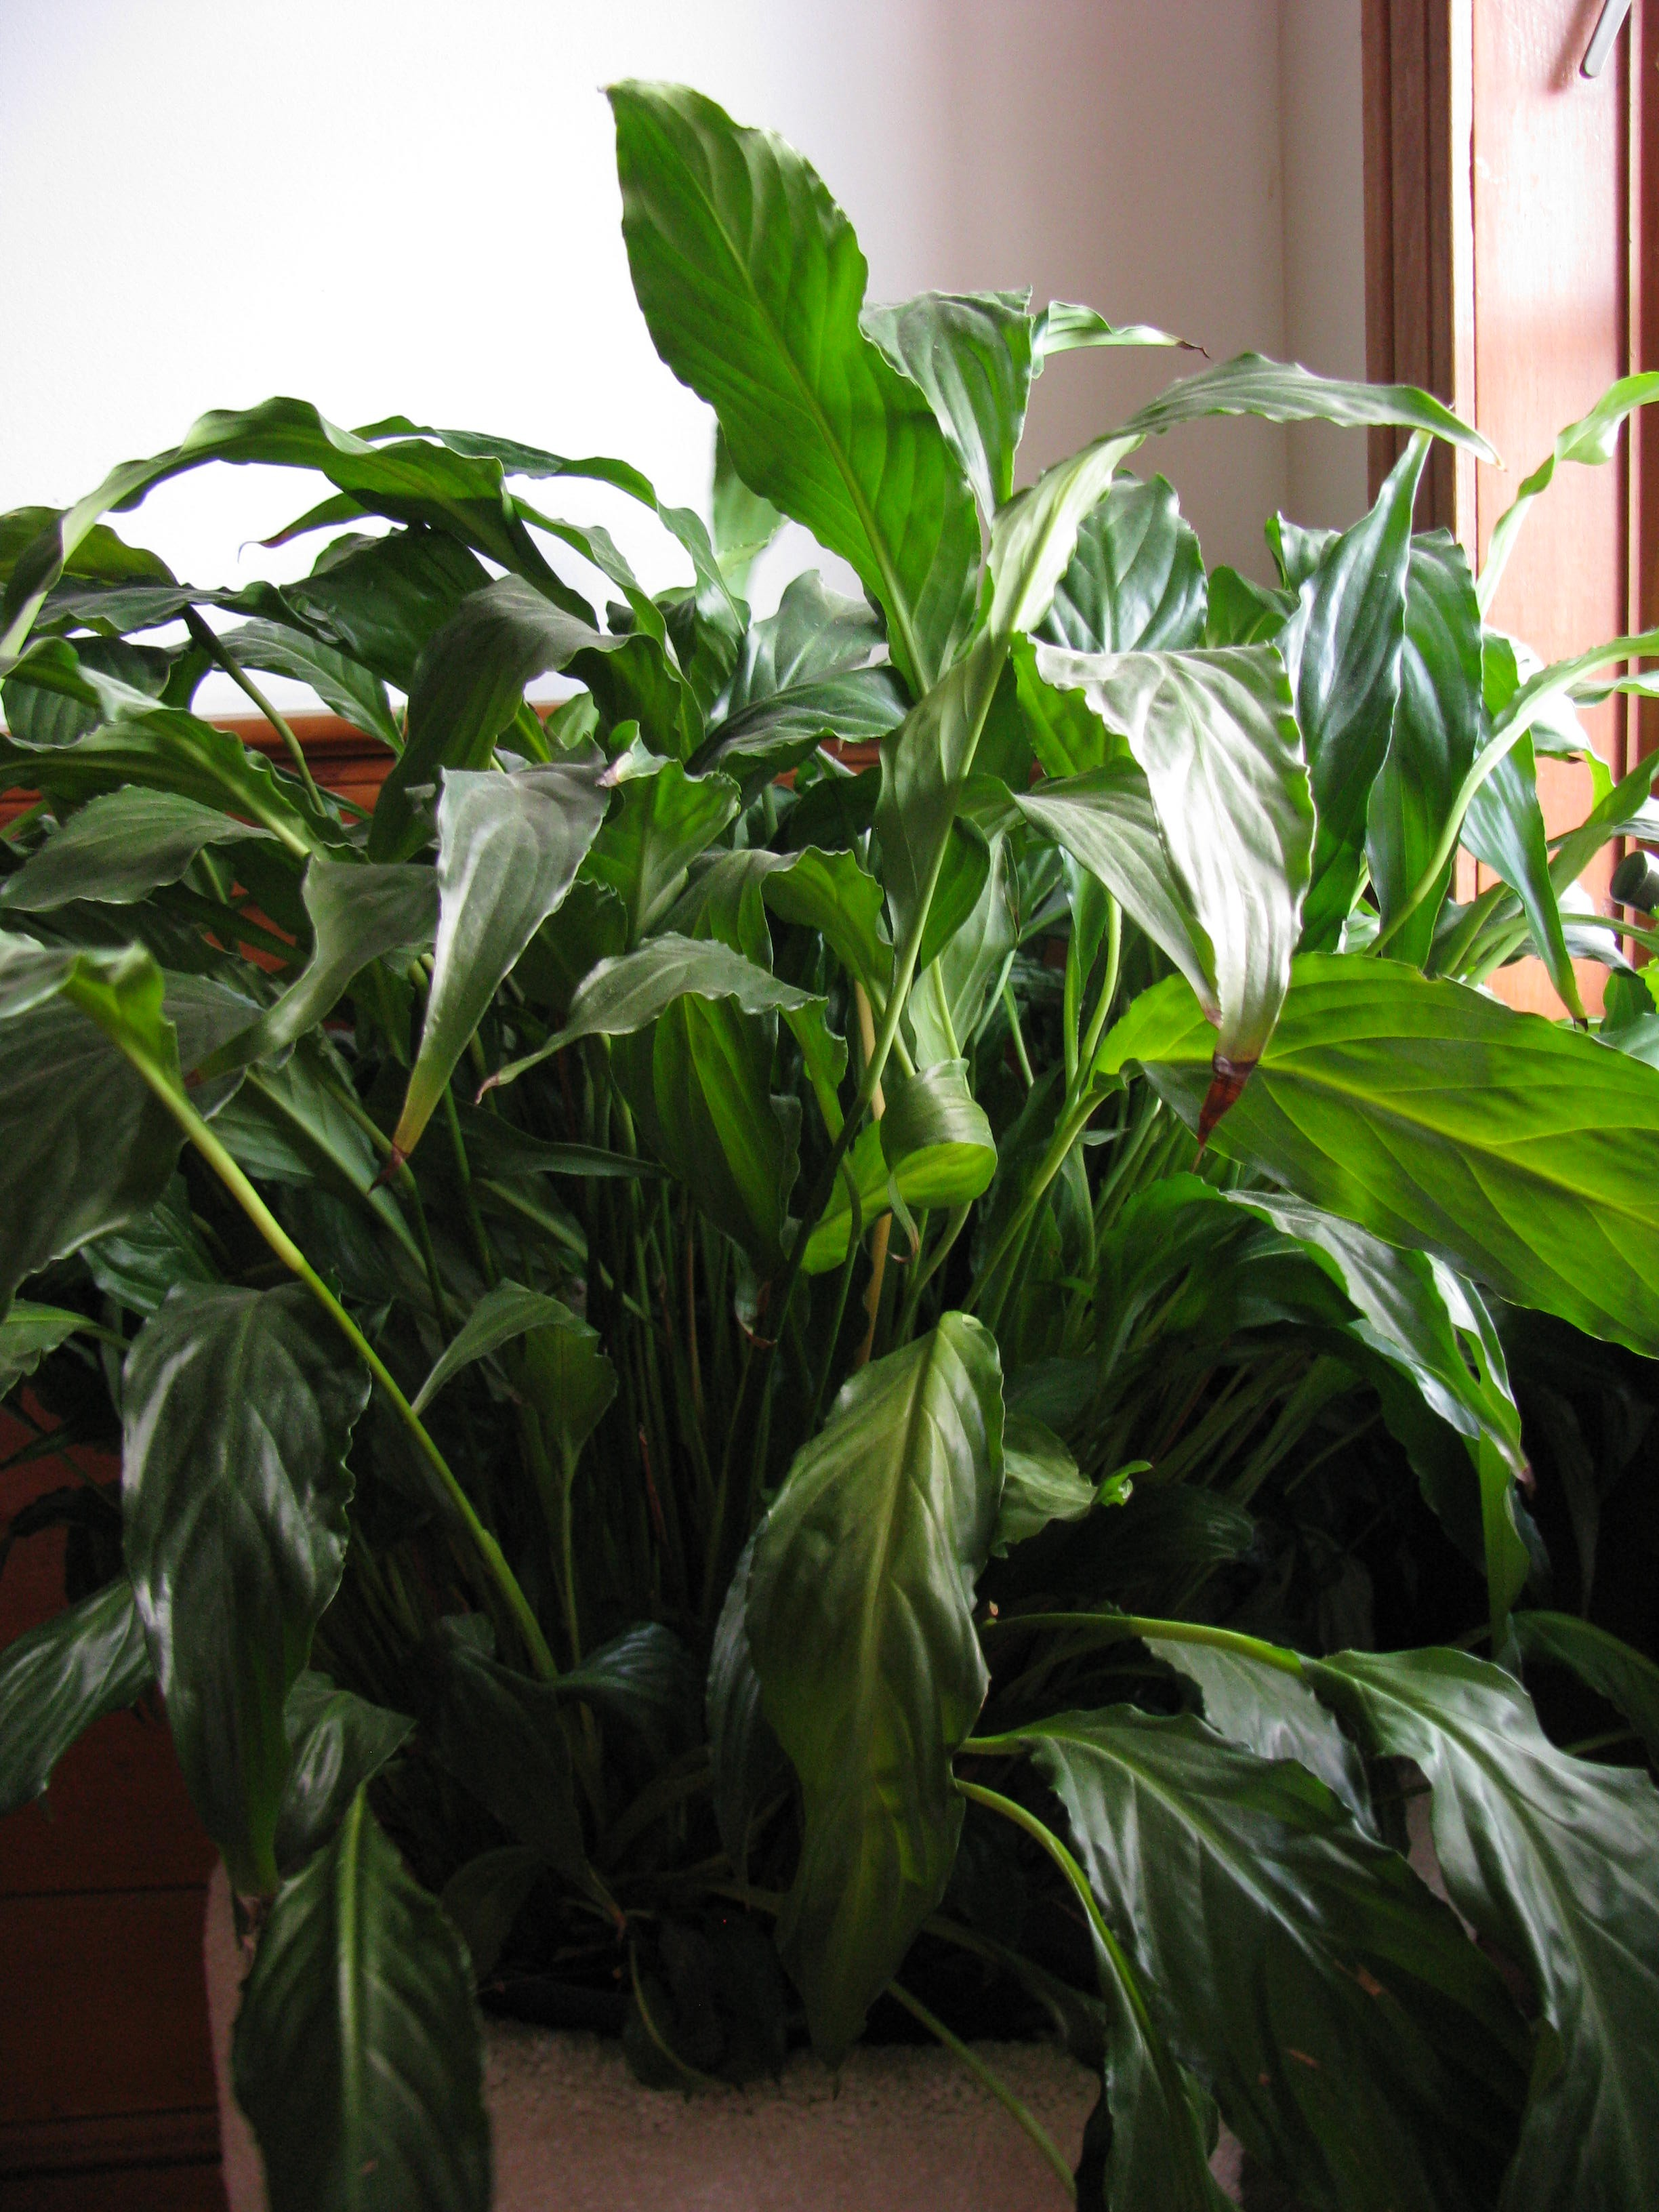 Exceptionnel ... Lily (also Known As White Sails And Botanically Known As Spathiphyllum)  I Tell Them That They Will Grow Just About Any Place, Including In A Closet.